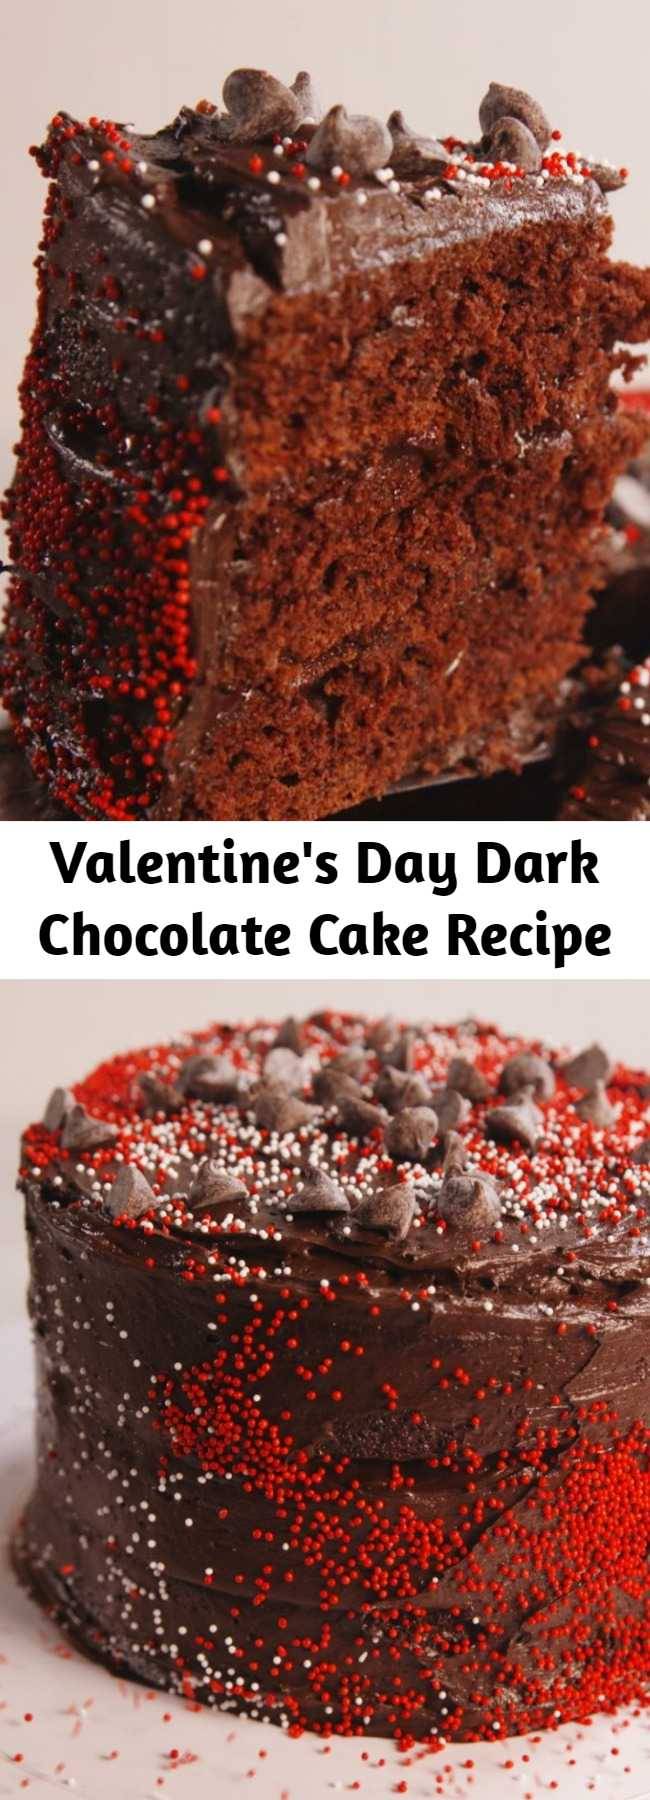 Valentine's Day Dark Chocolate Cake Recipe - Really impress your sweetheart this year.